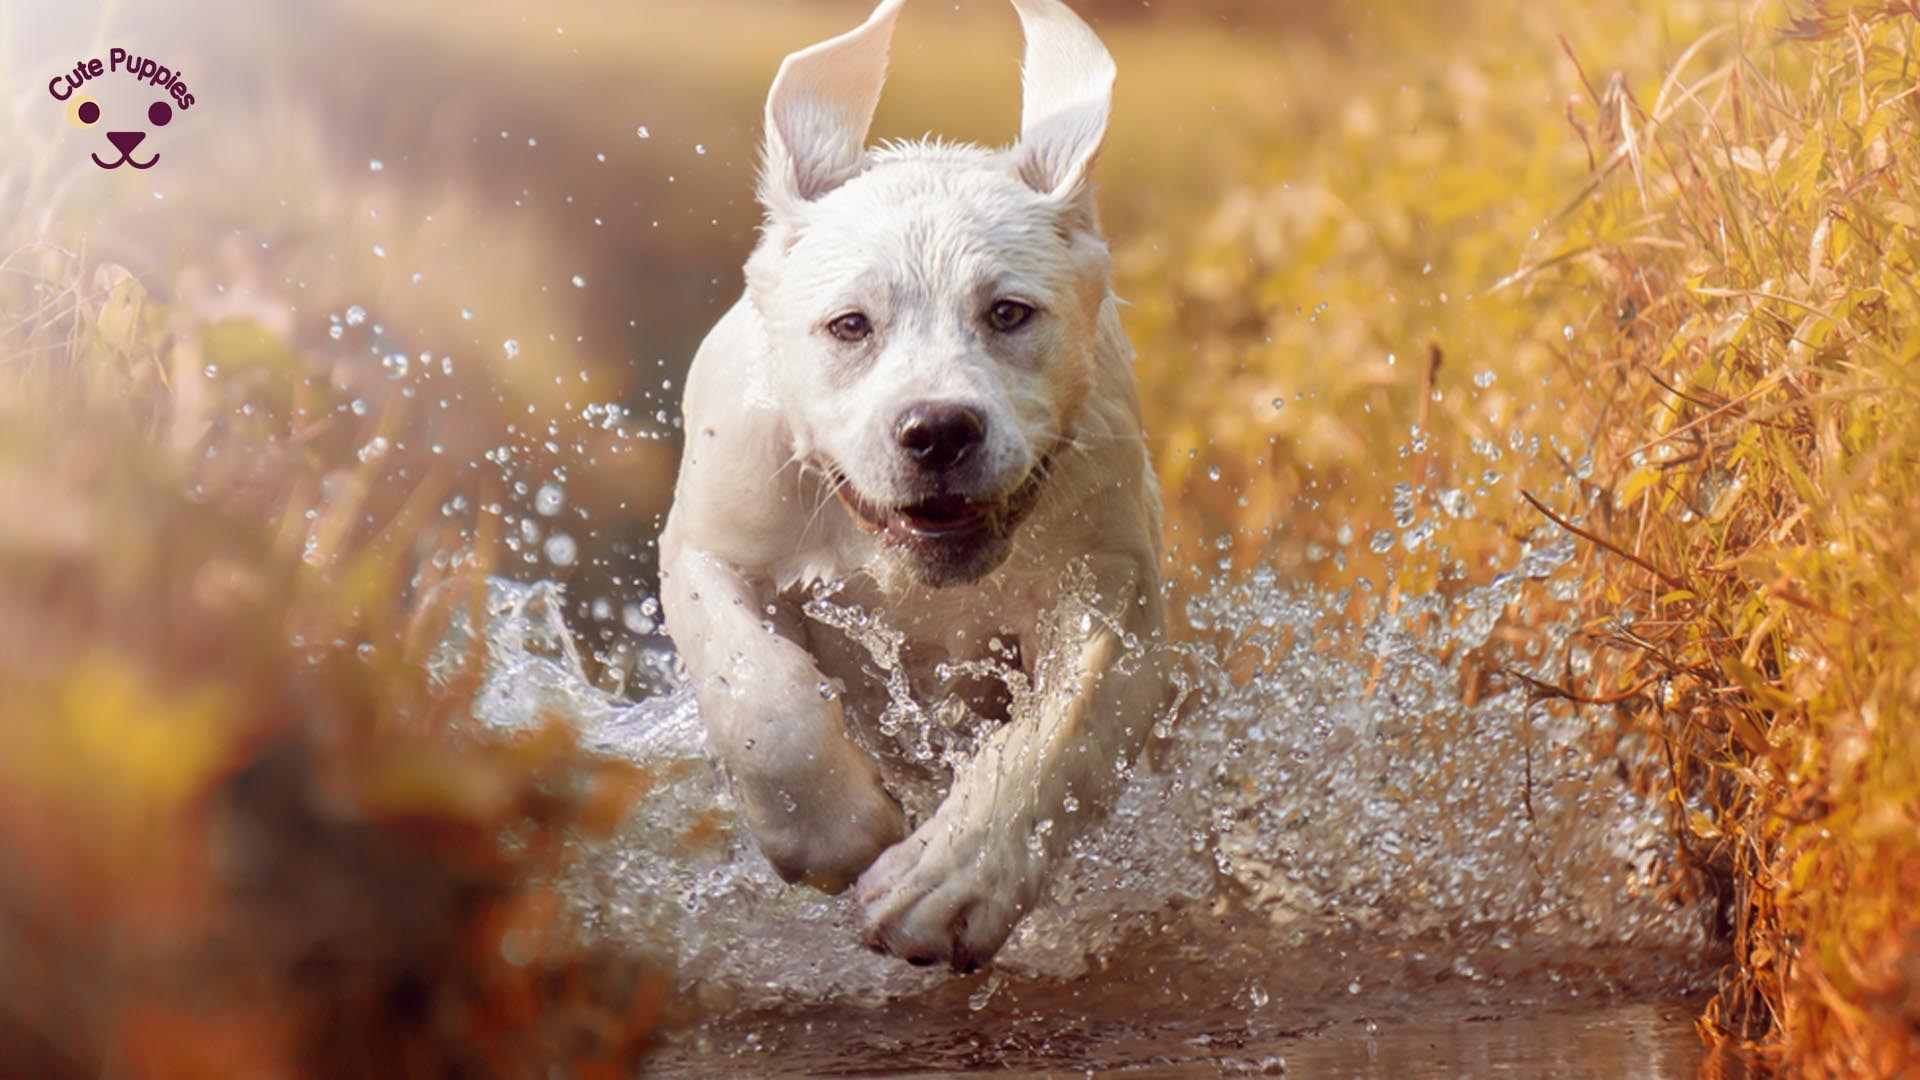 High Quality Dog Wallpaper For Dog Lovers Cute Puppies Now 1920x1080